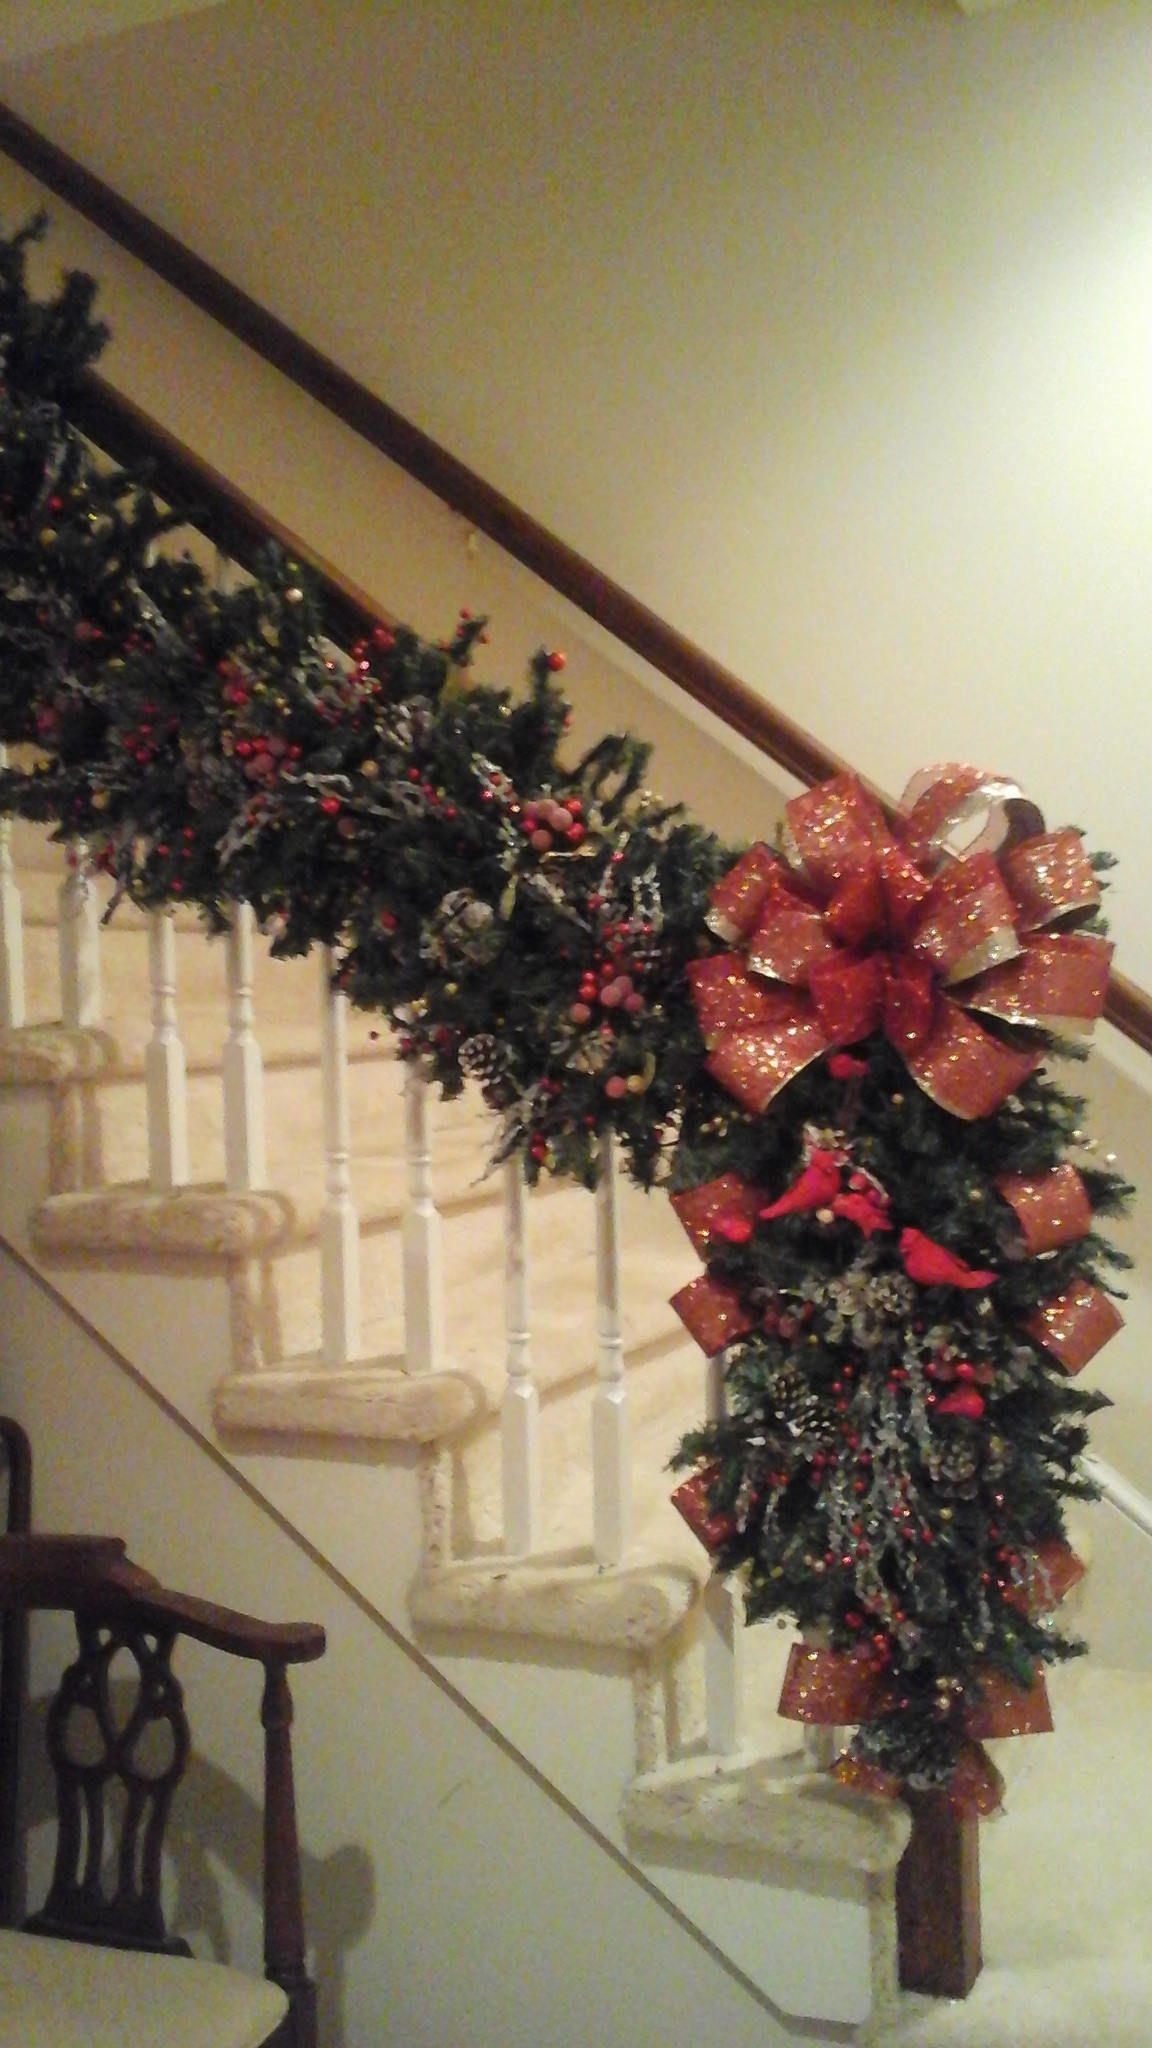 Christmas Garland Swag Post Wreath Lighted 6ft Luxury Staircase Garland Shipping Included Rustic Ice Branc Christmas Swags Christmas Garland Hallmark Decor